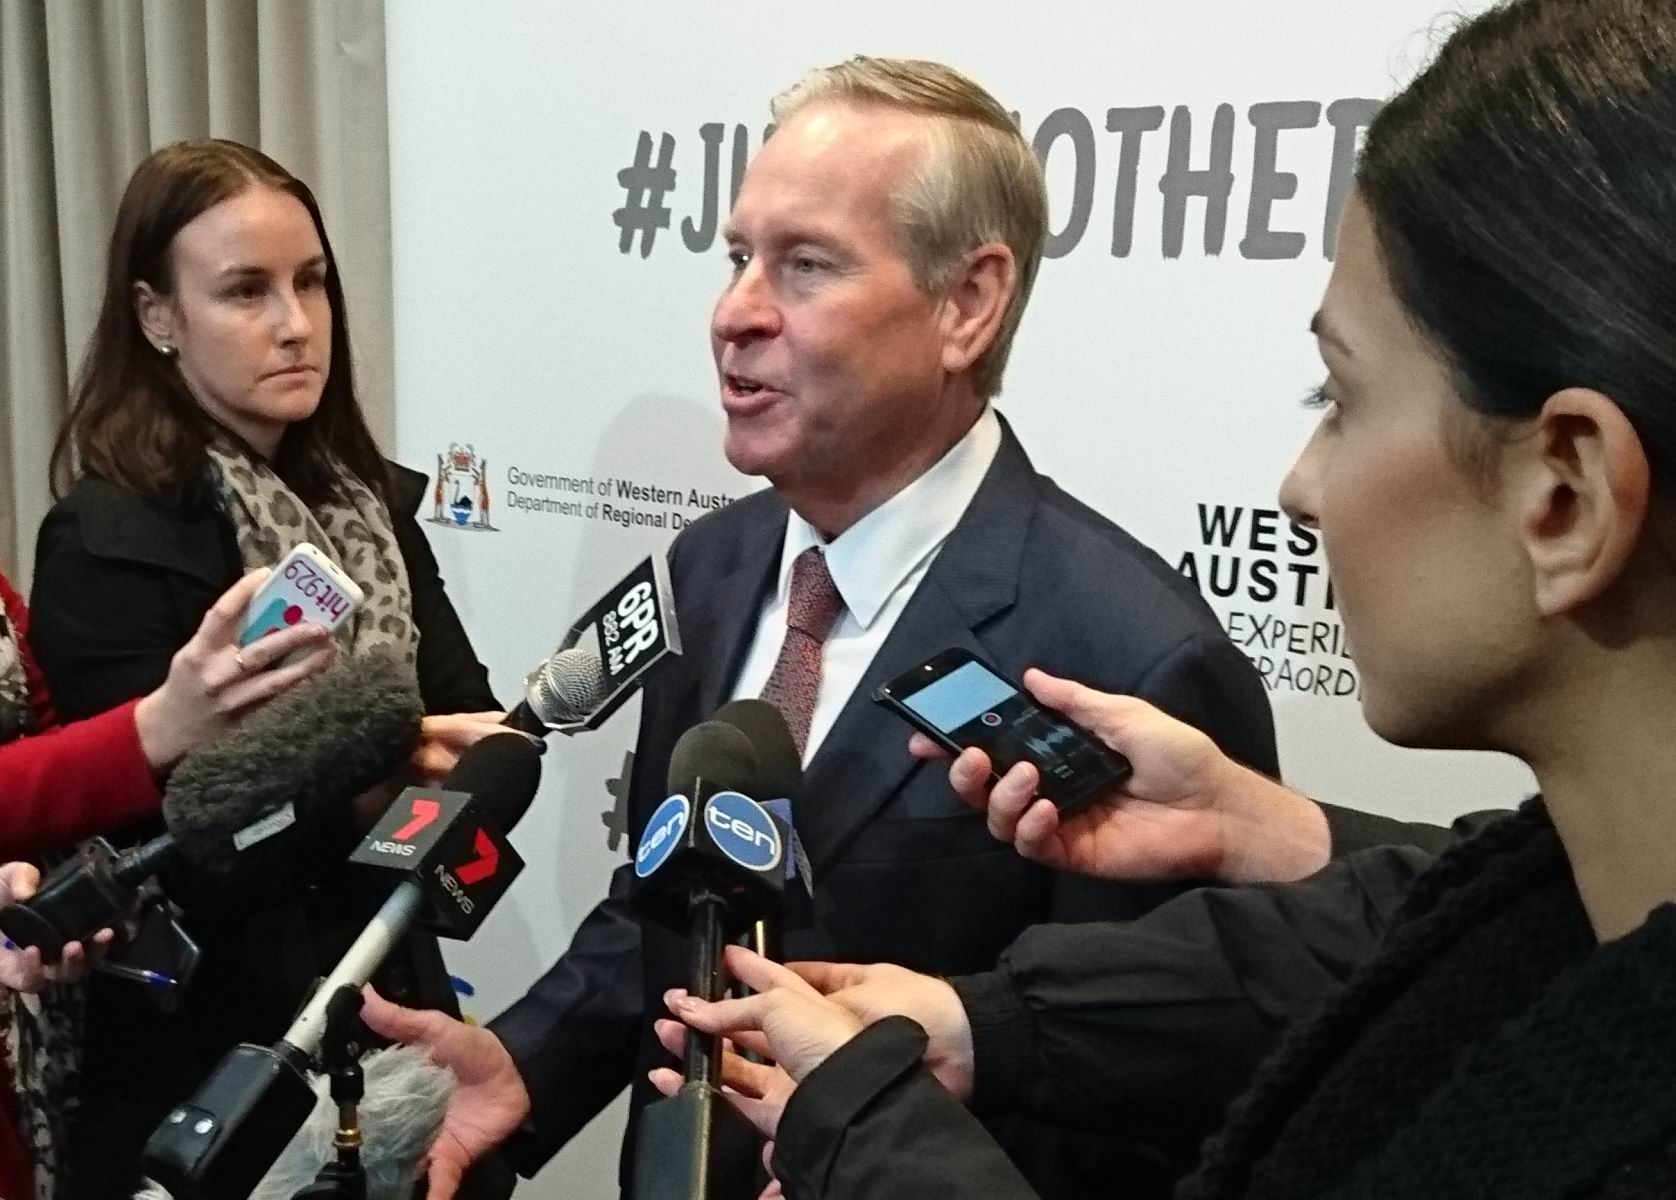 Premier Colin Barnett addresses the media after the campaign launch.